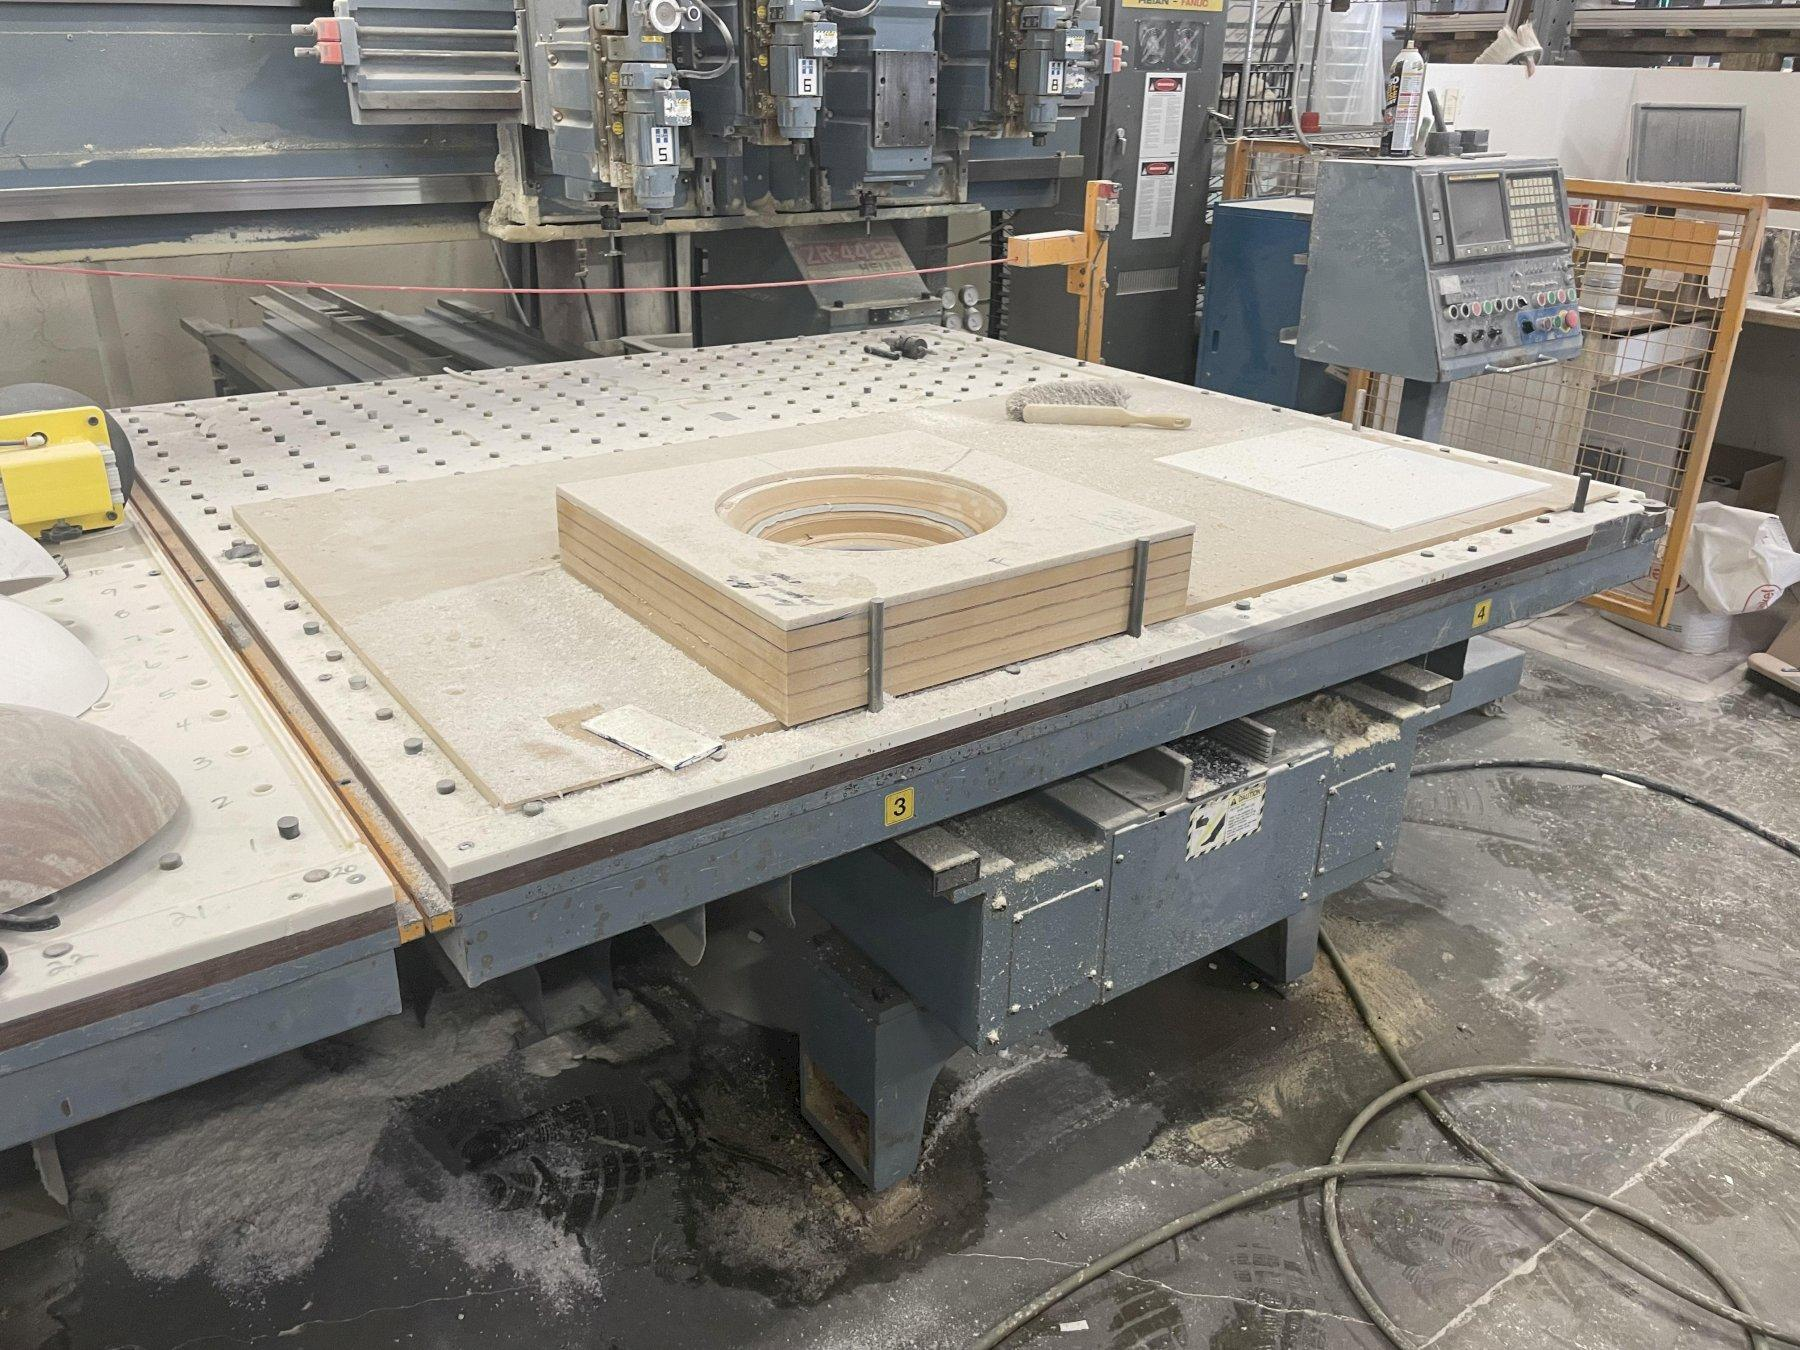 4 SPINDLE HEIAN MODEL #ZR-442P CNC TWIN MOVING MATRIX TABLE ROUTER: STOCK #13639